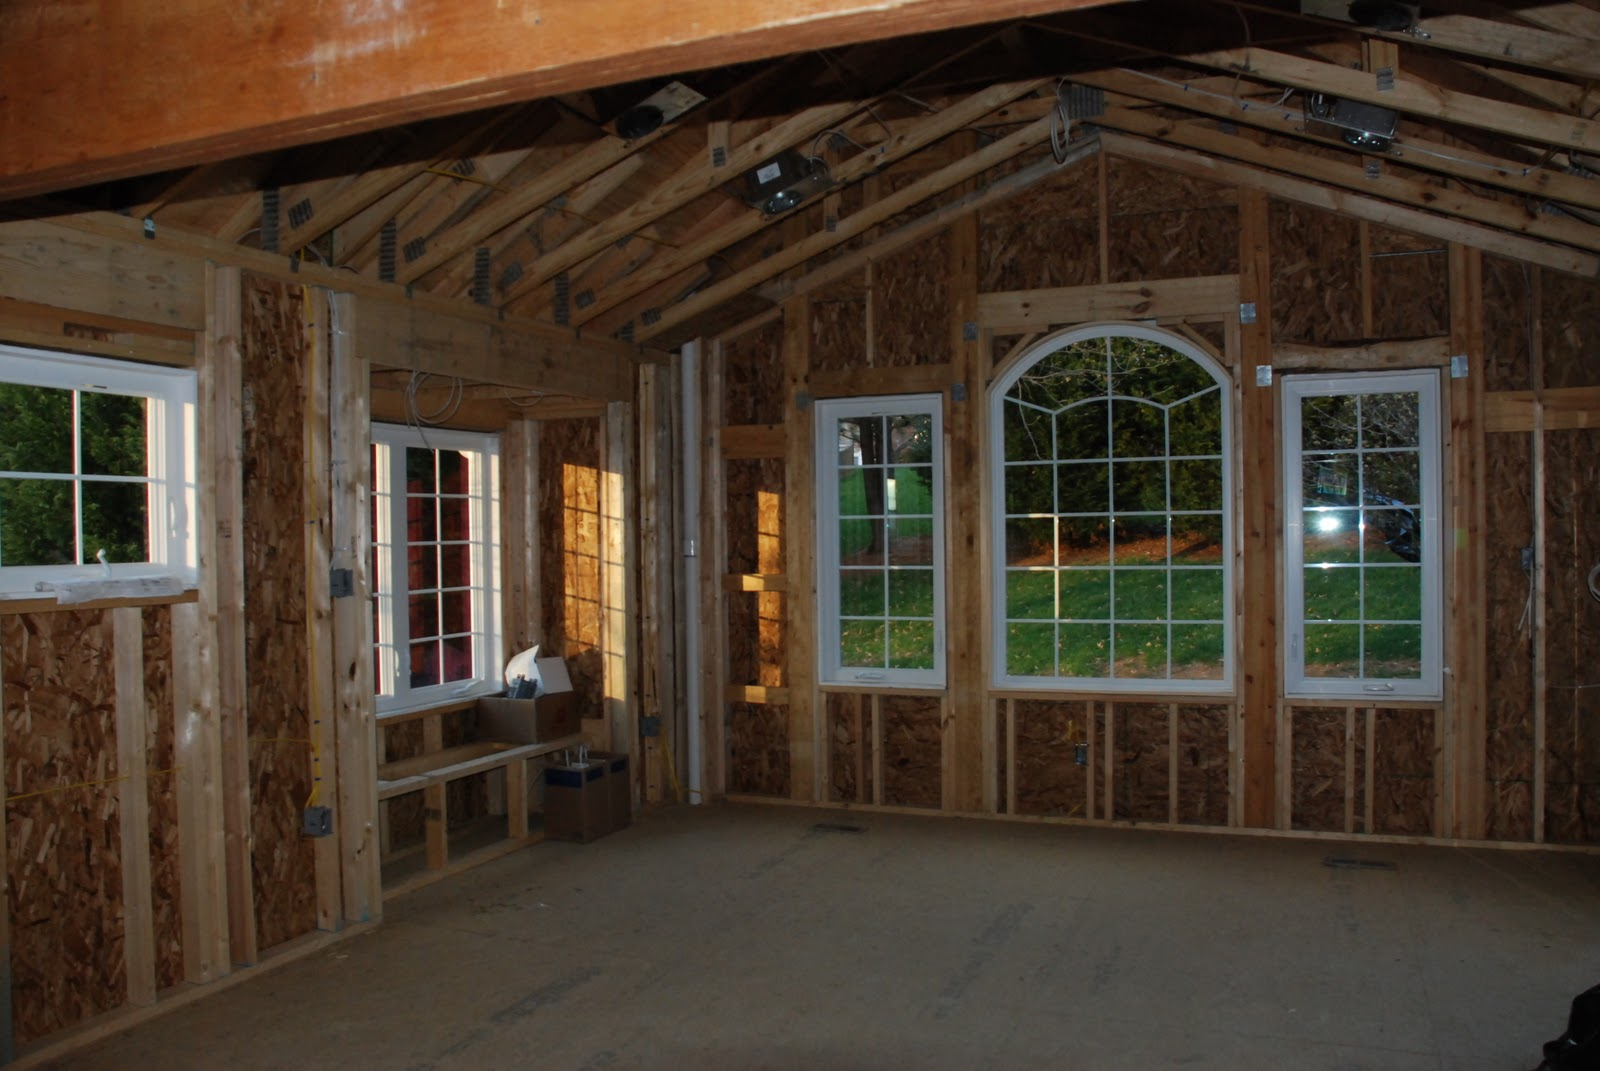 During:  the view from the original kitchen, under the new beam, out to the new breakfast room.  Check out the window seat to the left, already catching some morning sun.